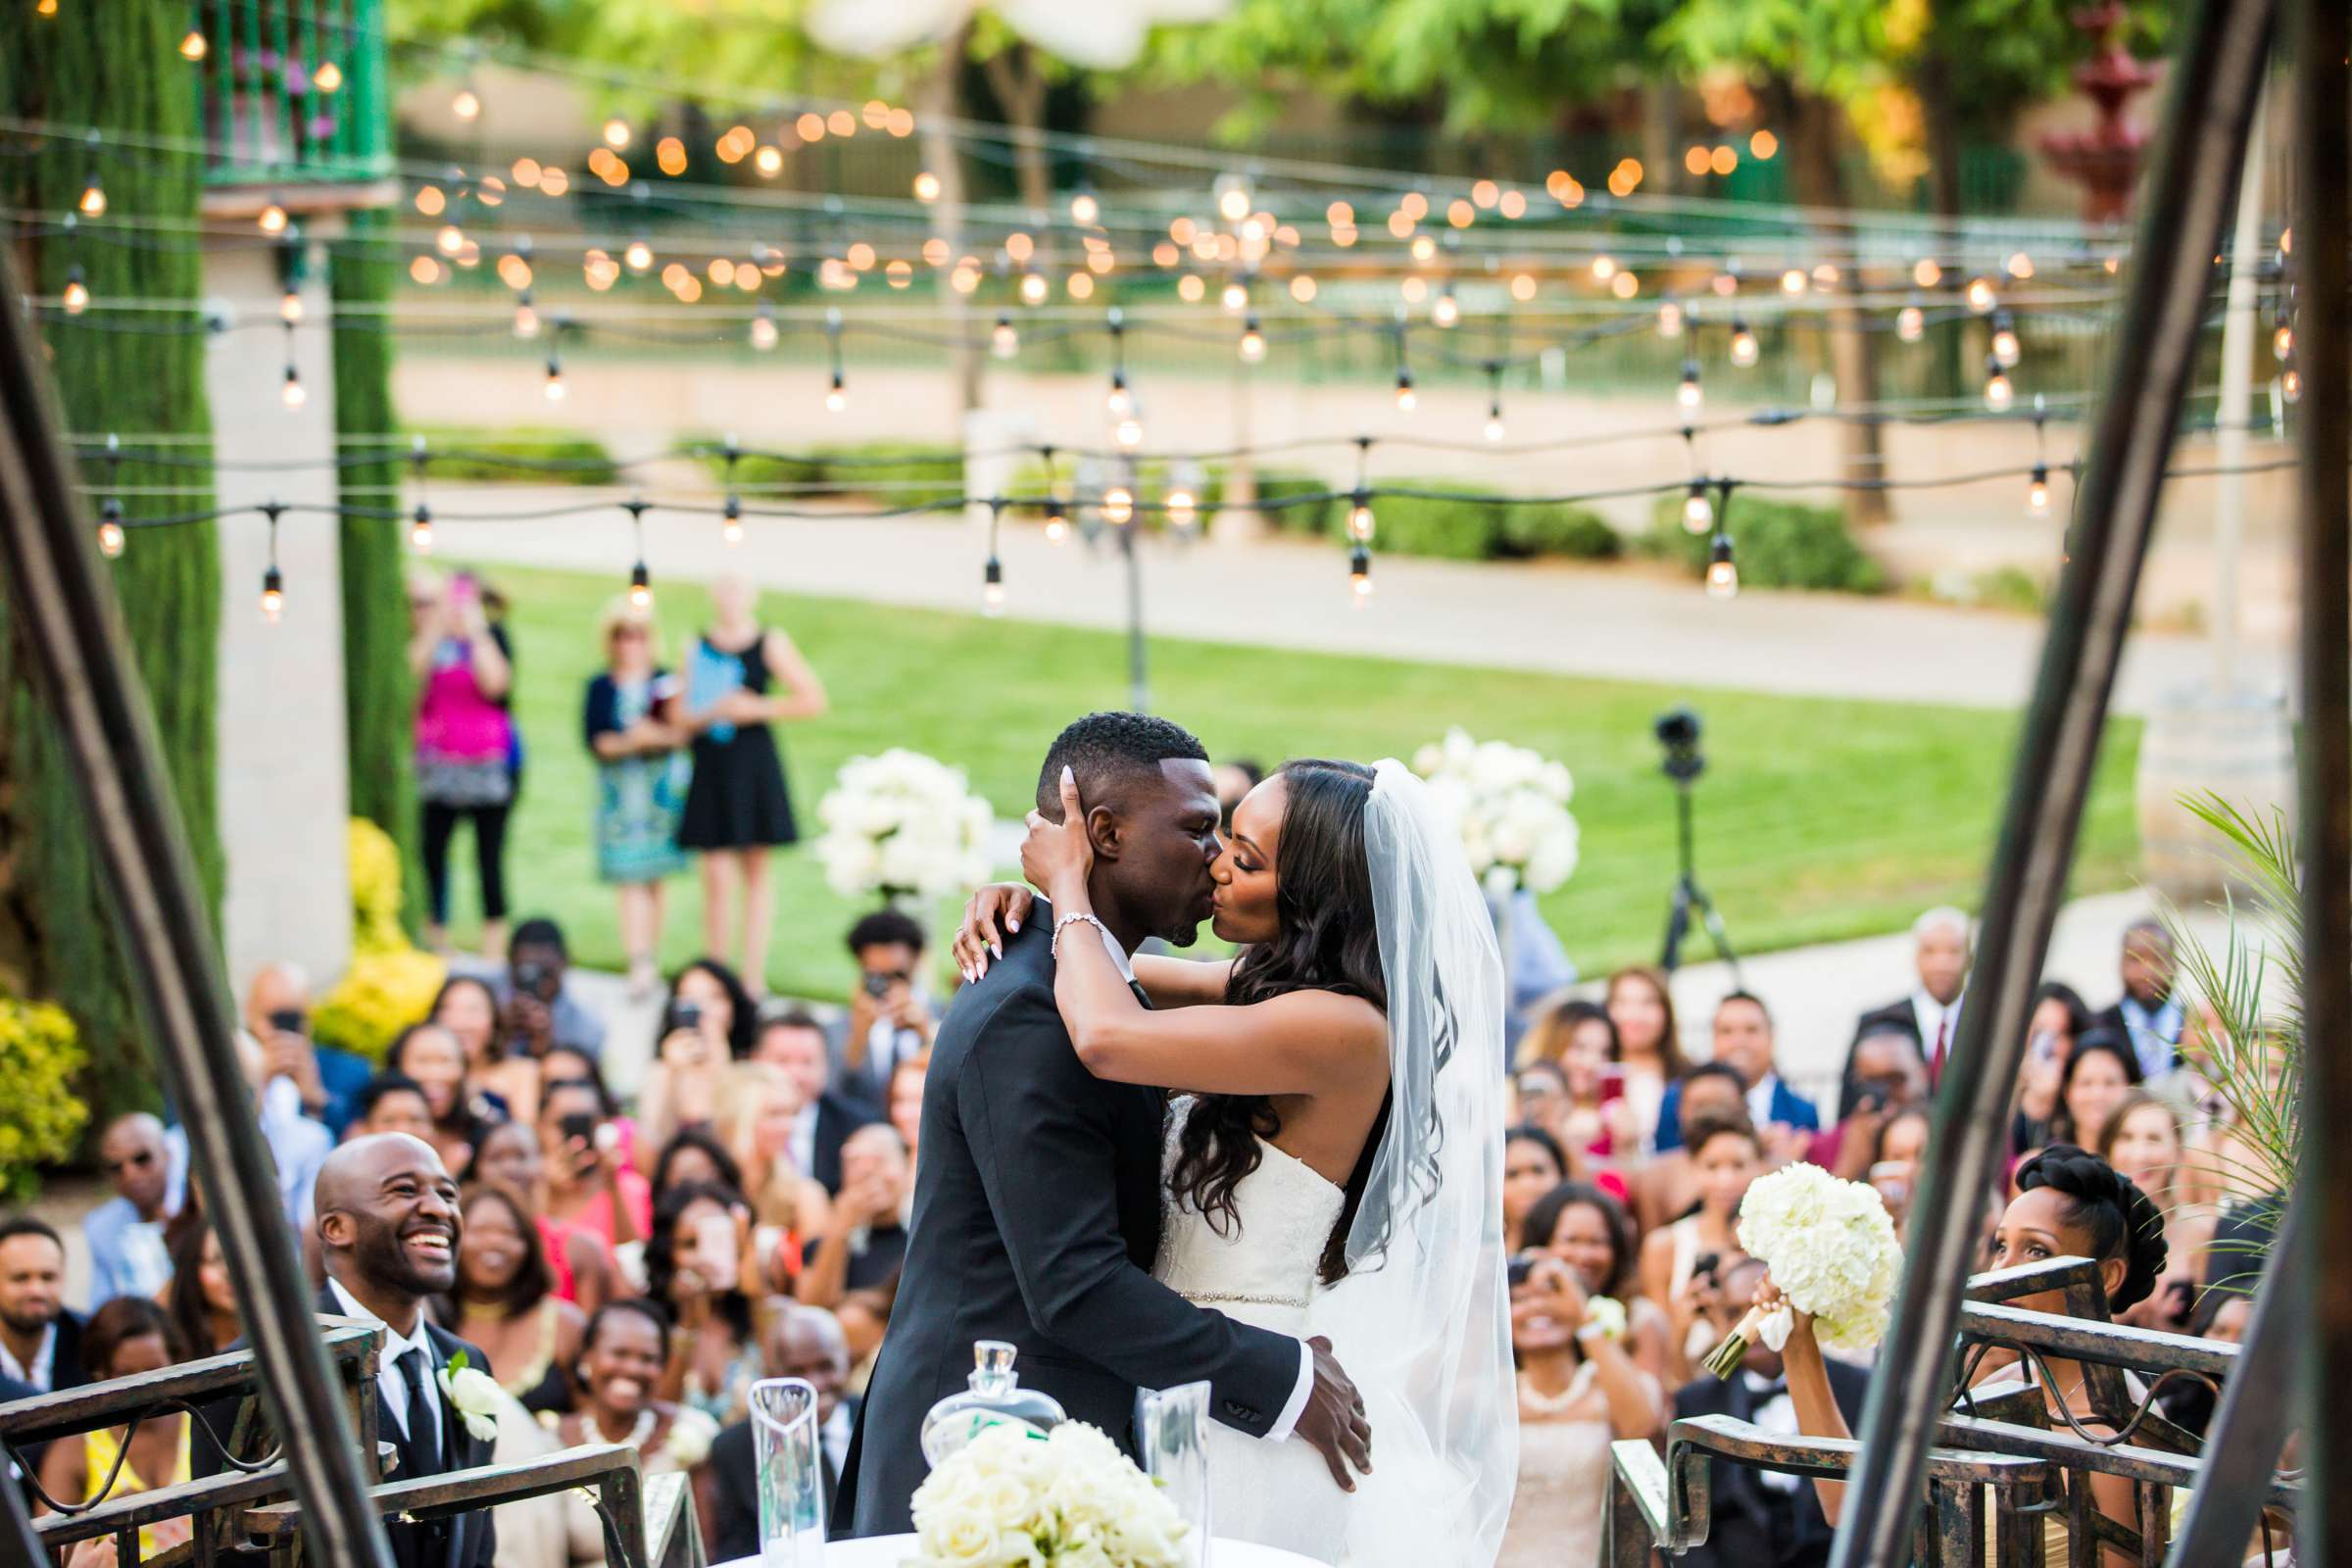 Photographers Favorite at South Coast Winery Wedding, Brittani and Johnny Wedding Photo #2 by True Photography